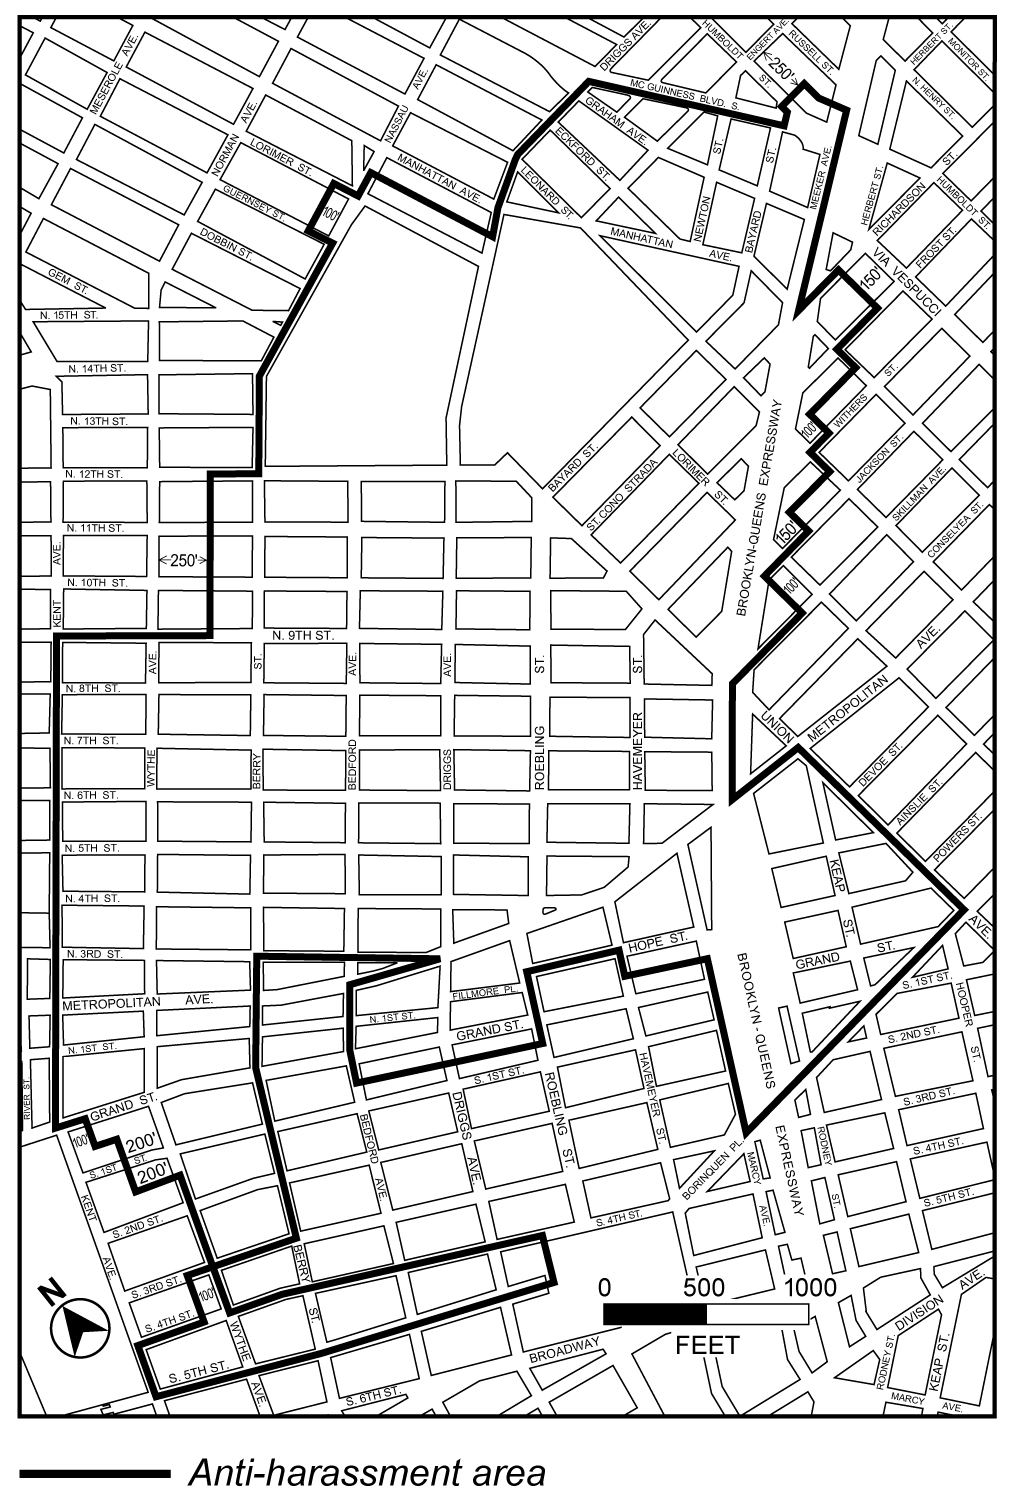 Zoning Resolutions 23-013.1